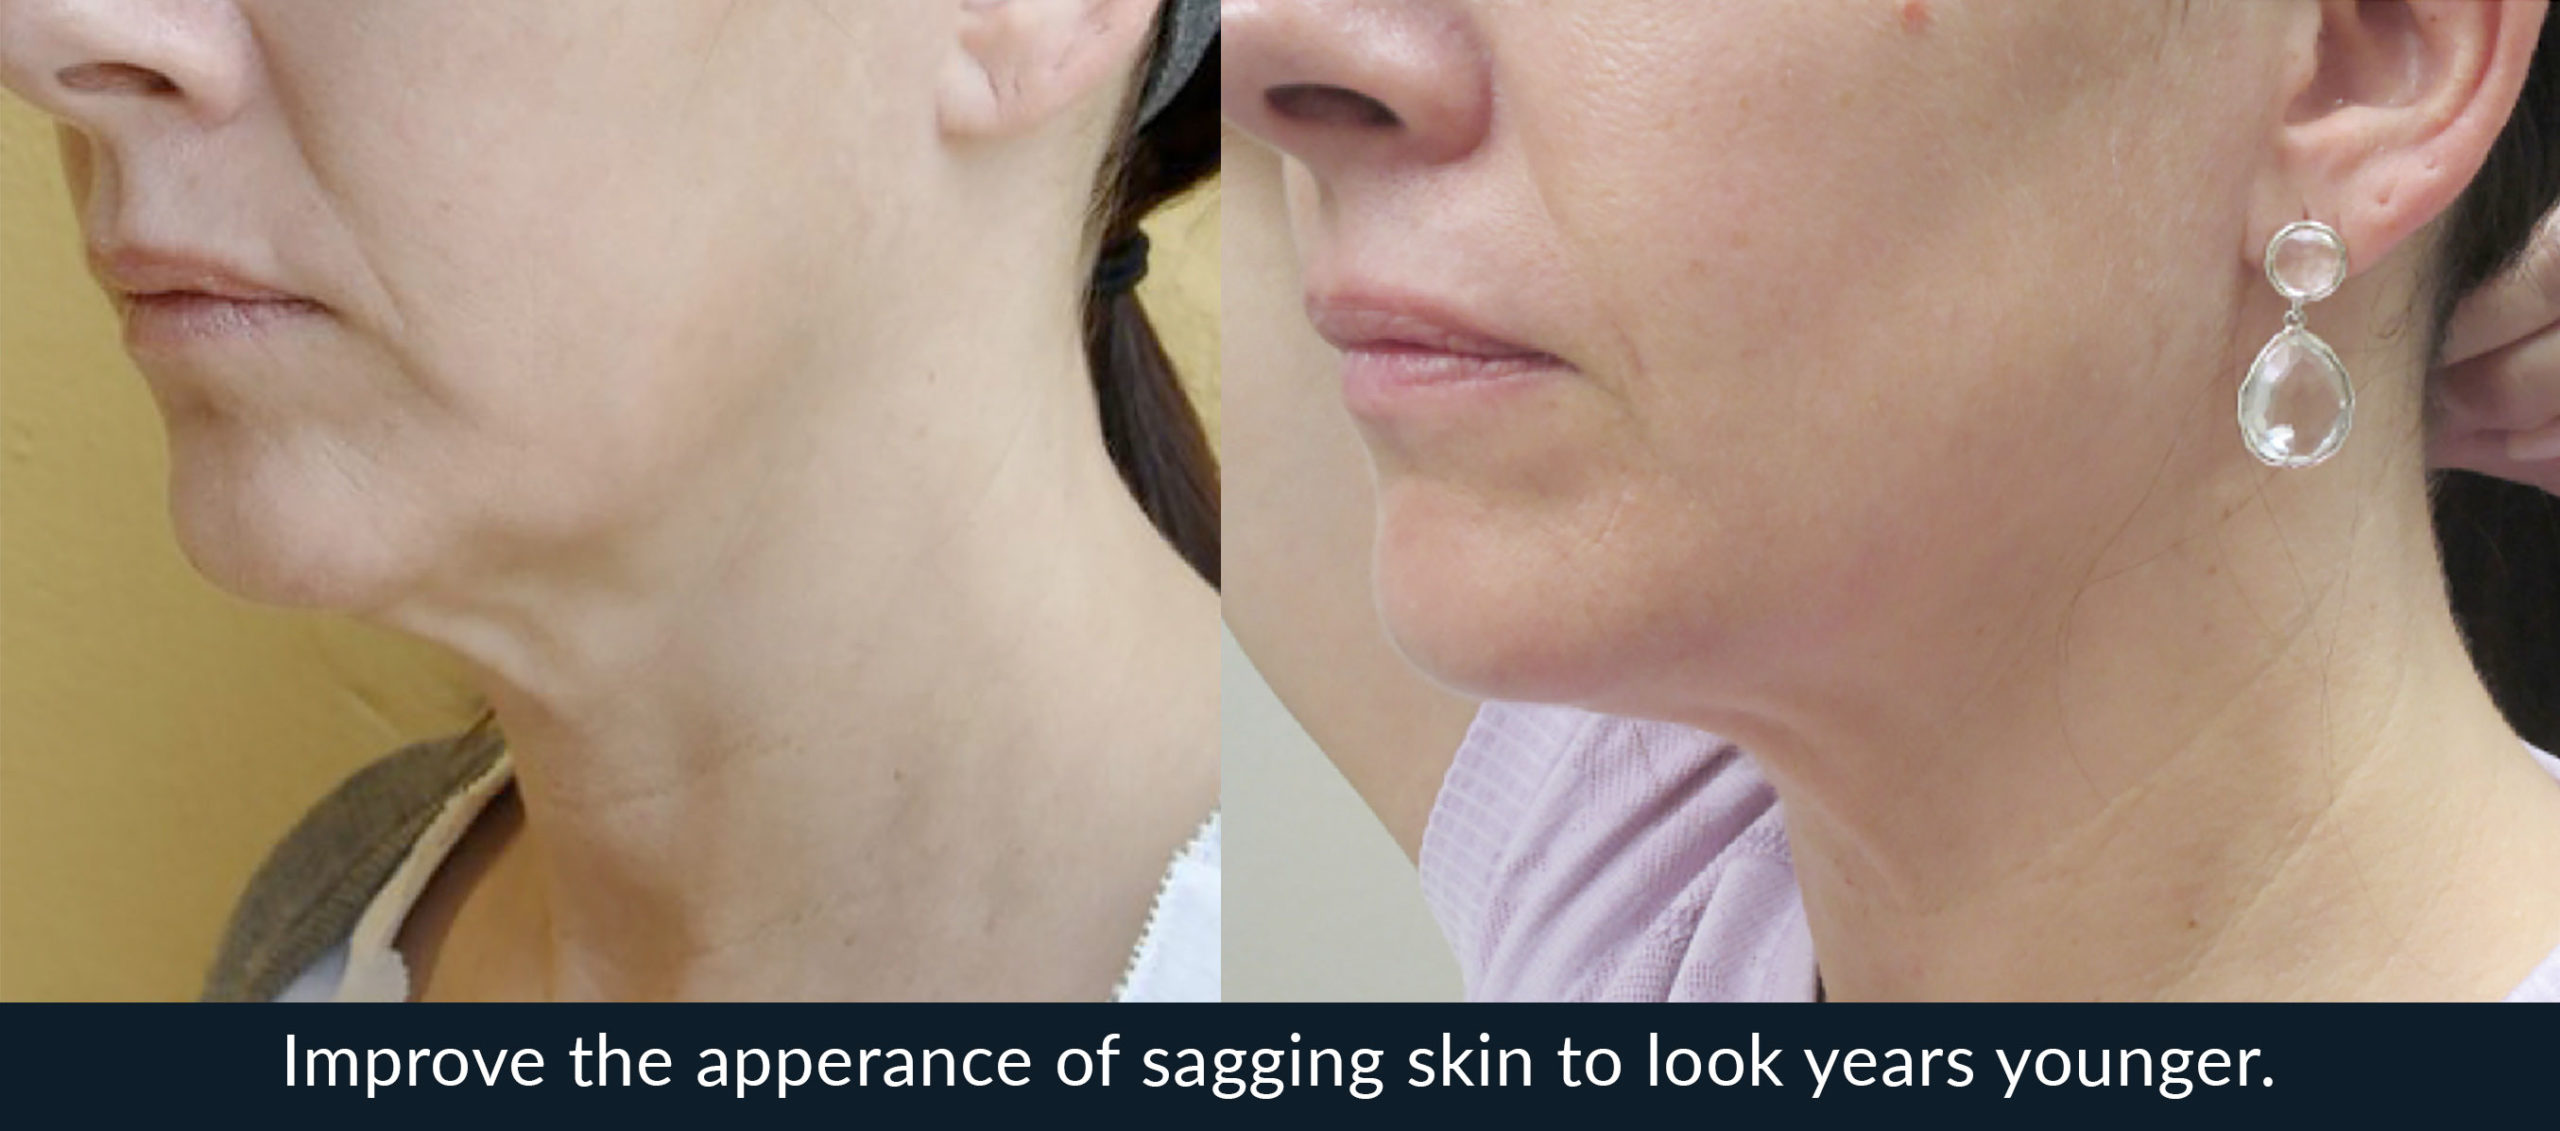 Morpheus 8 before and after skin tightening